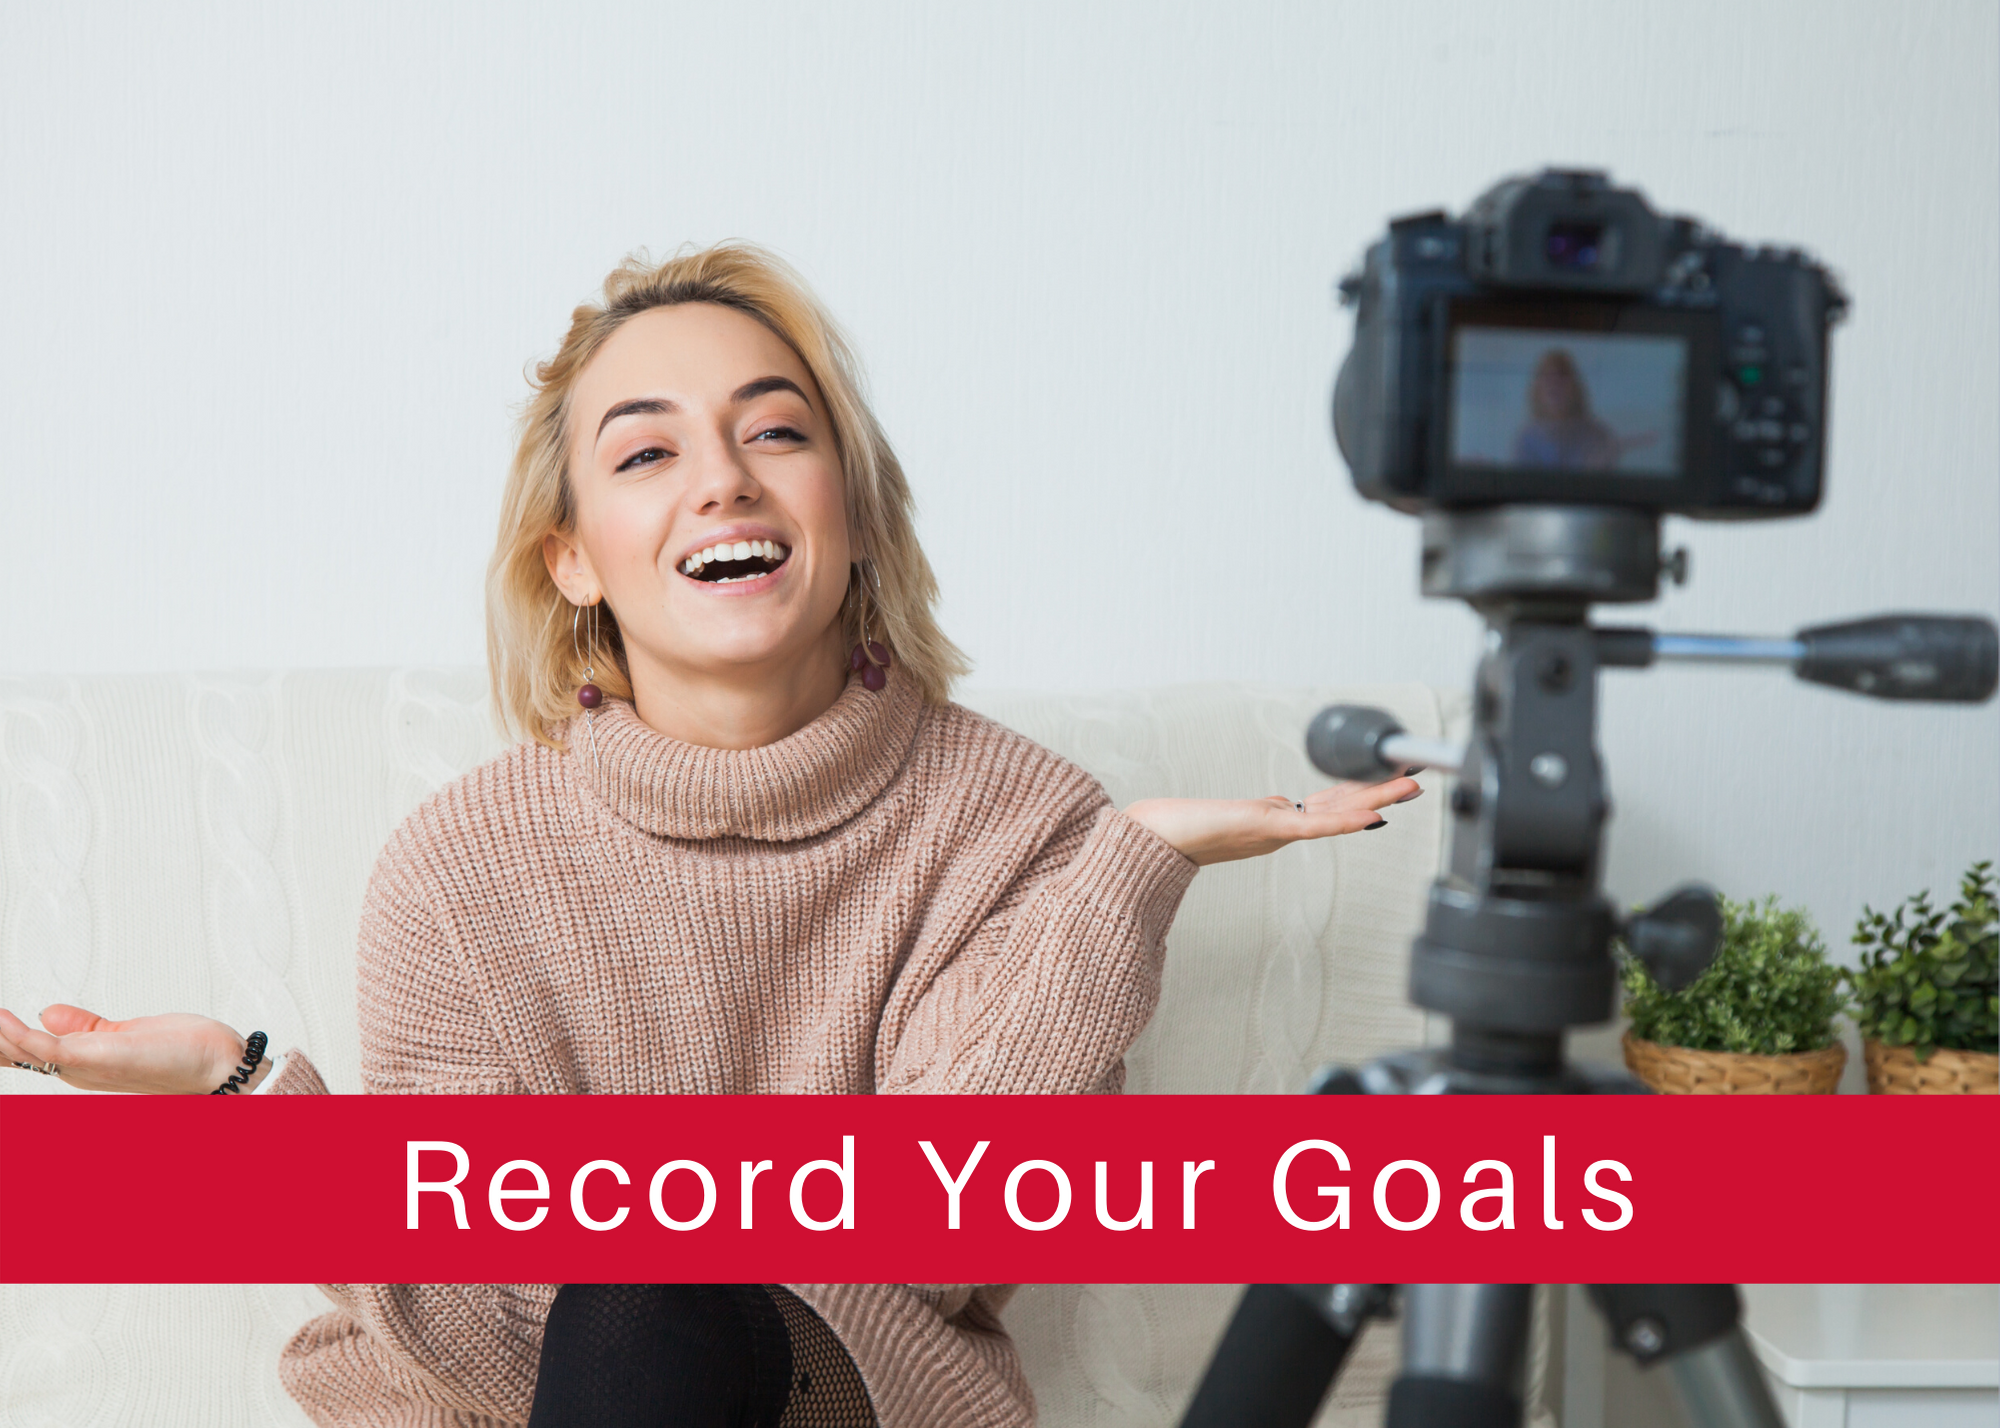 record your goals - woman with video camera